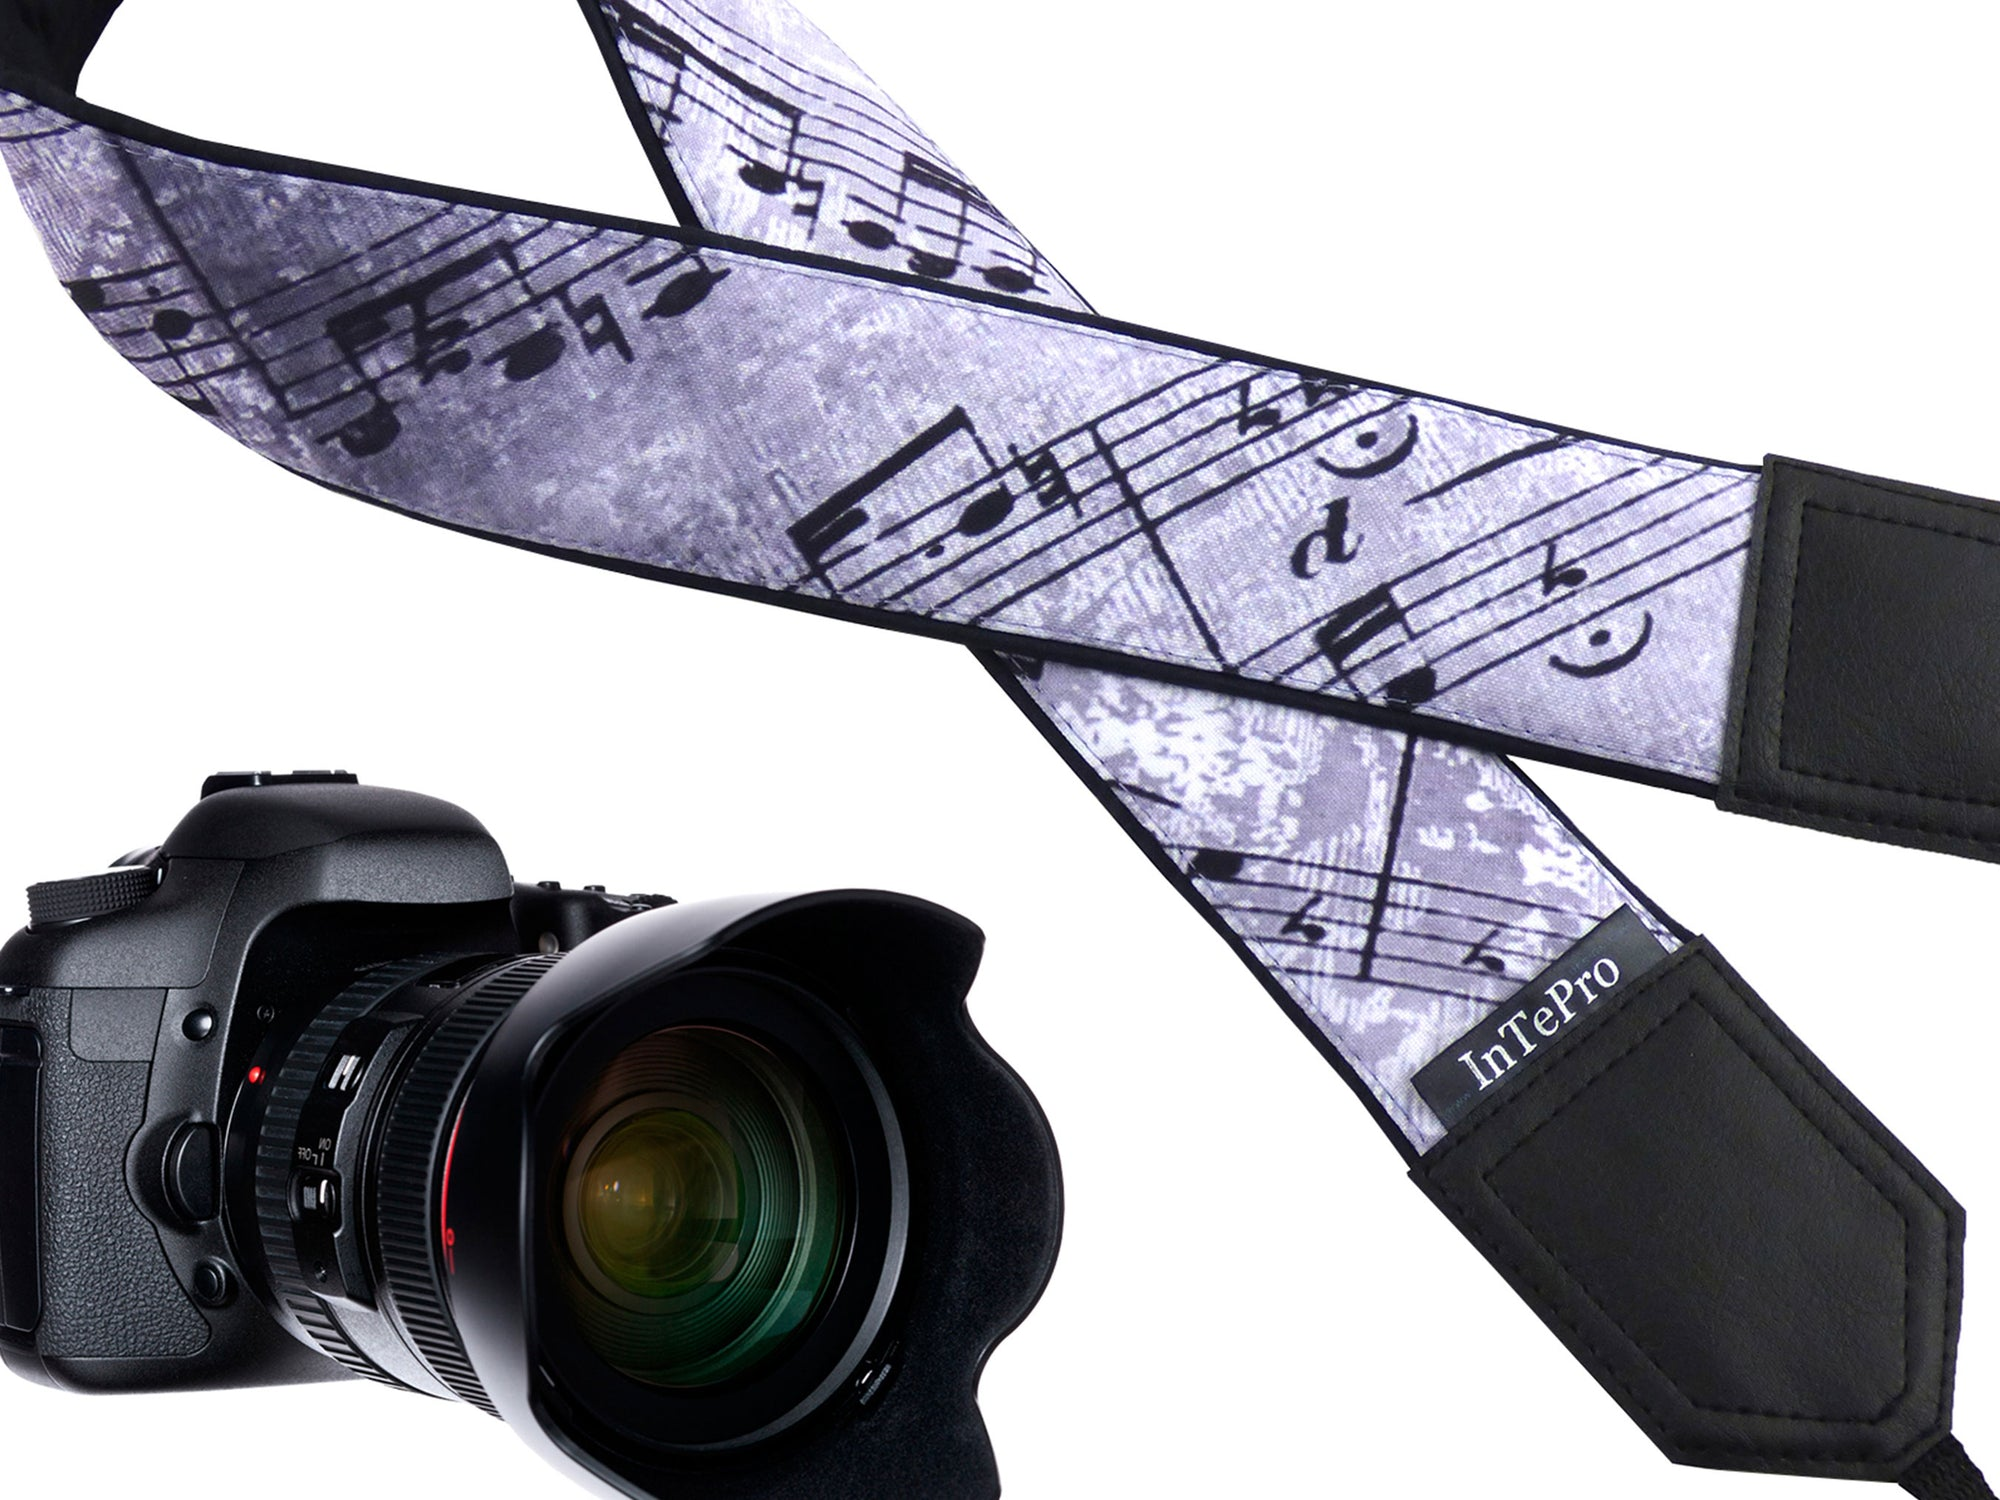 Personalized camera strap with music notes design. DSLR / SLR Camera Strap. Camera accessories by InTePro